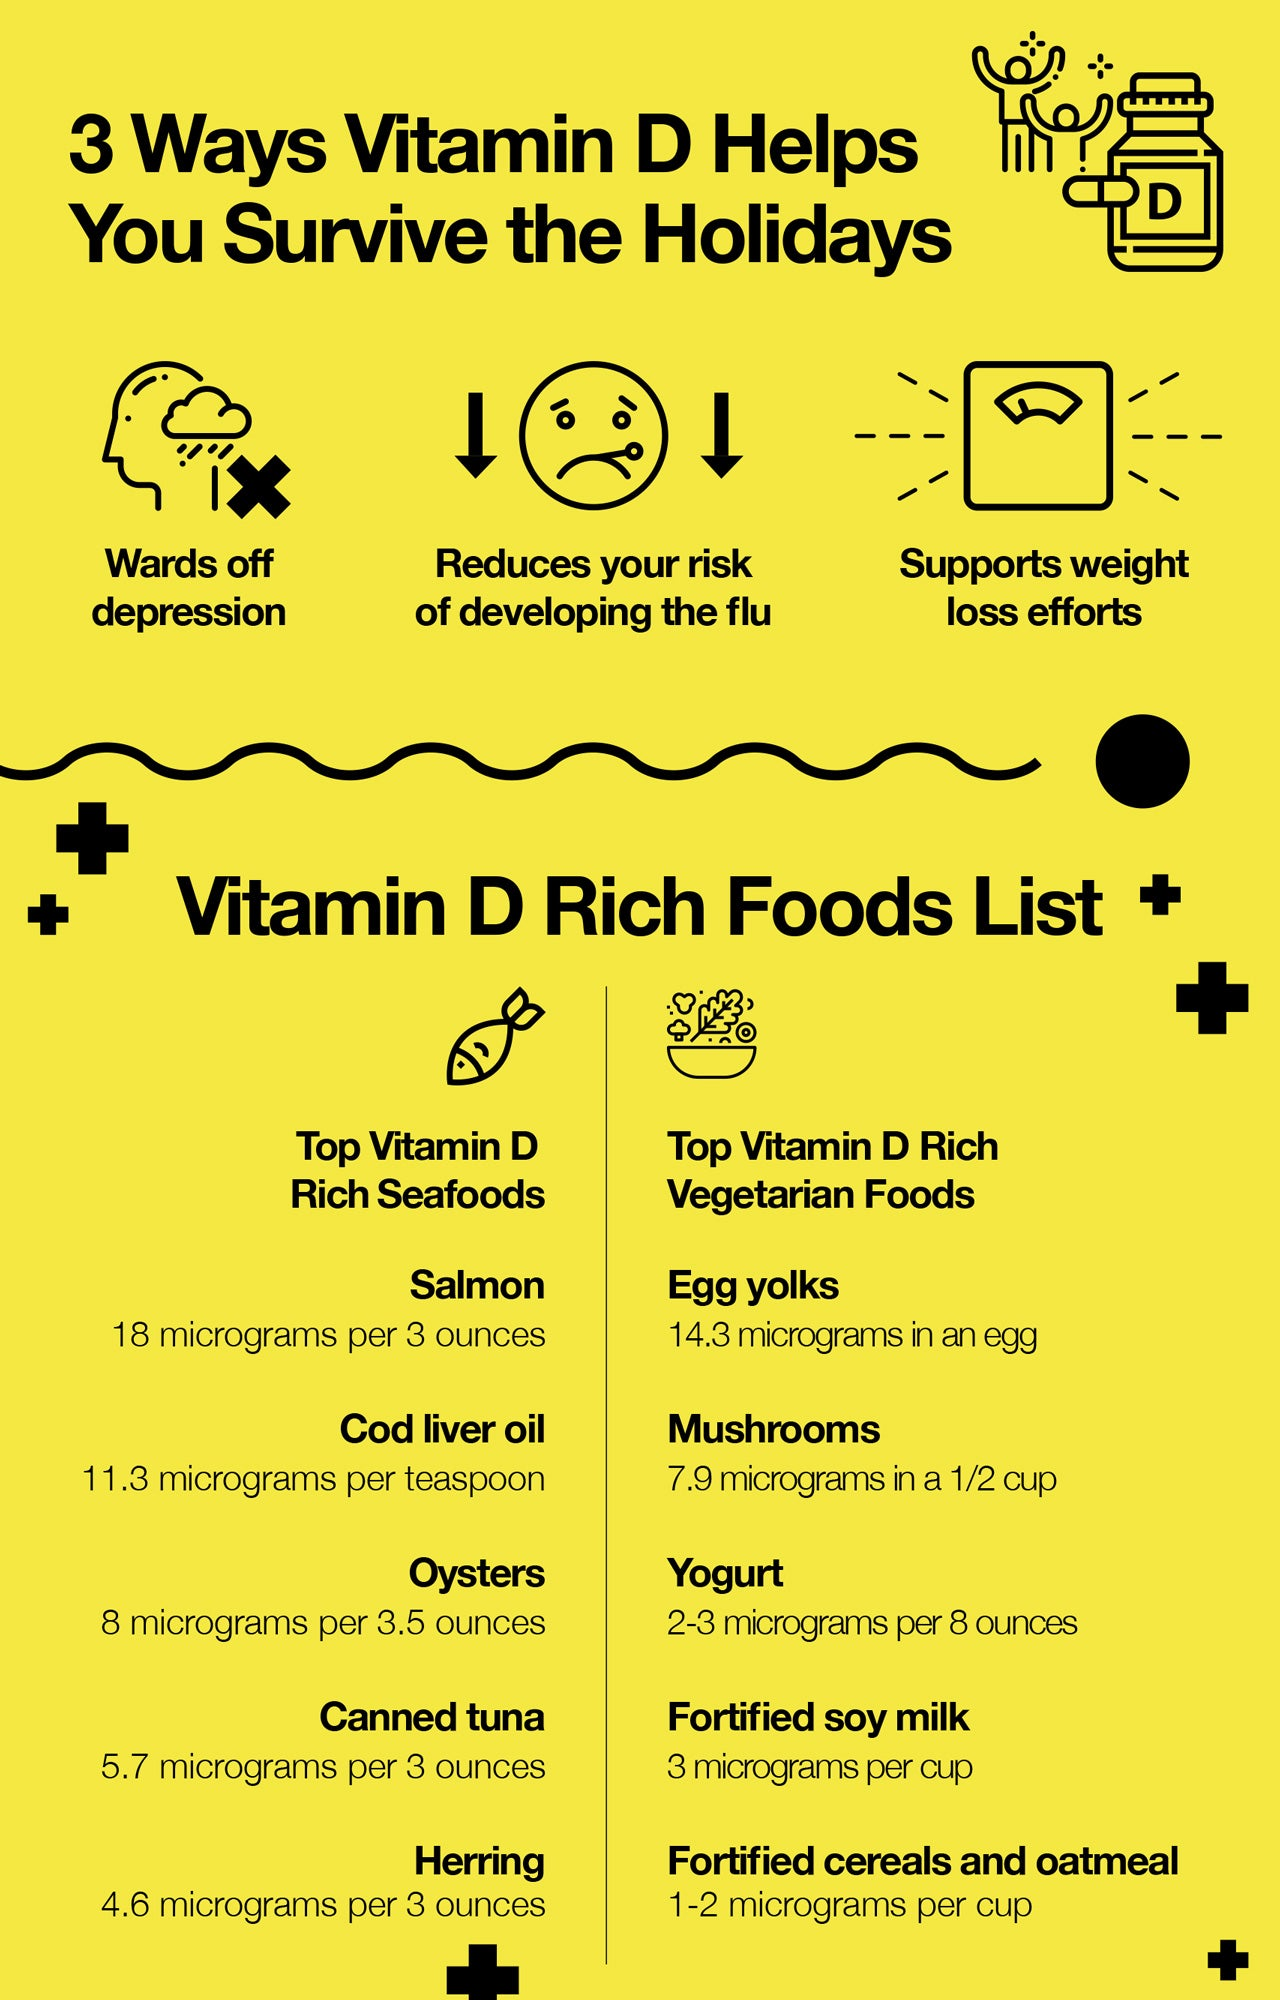 3 Ways Vitamin D Helps You Survive the Holidays